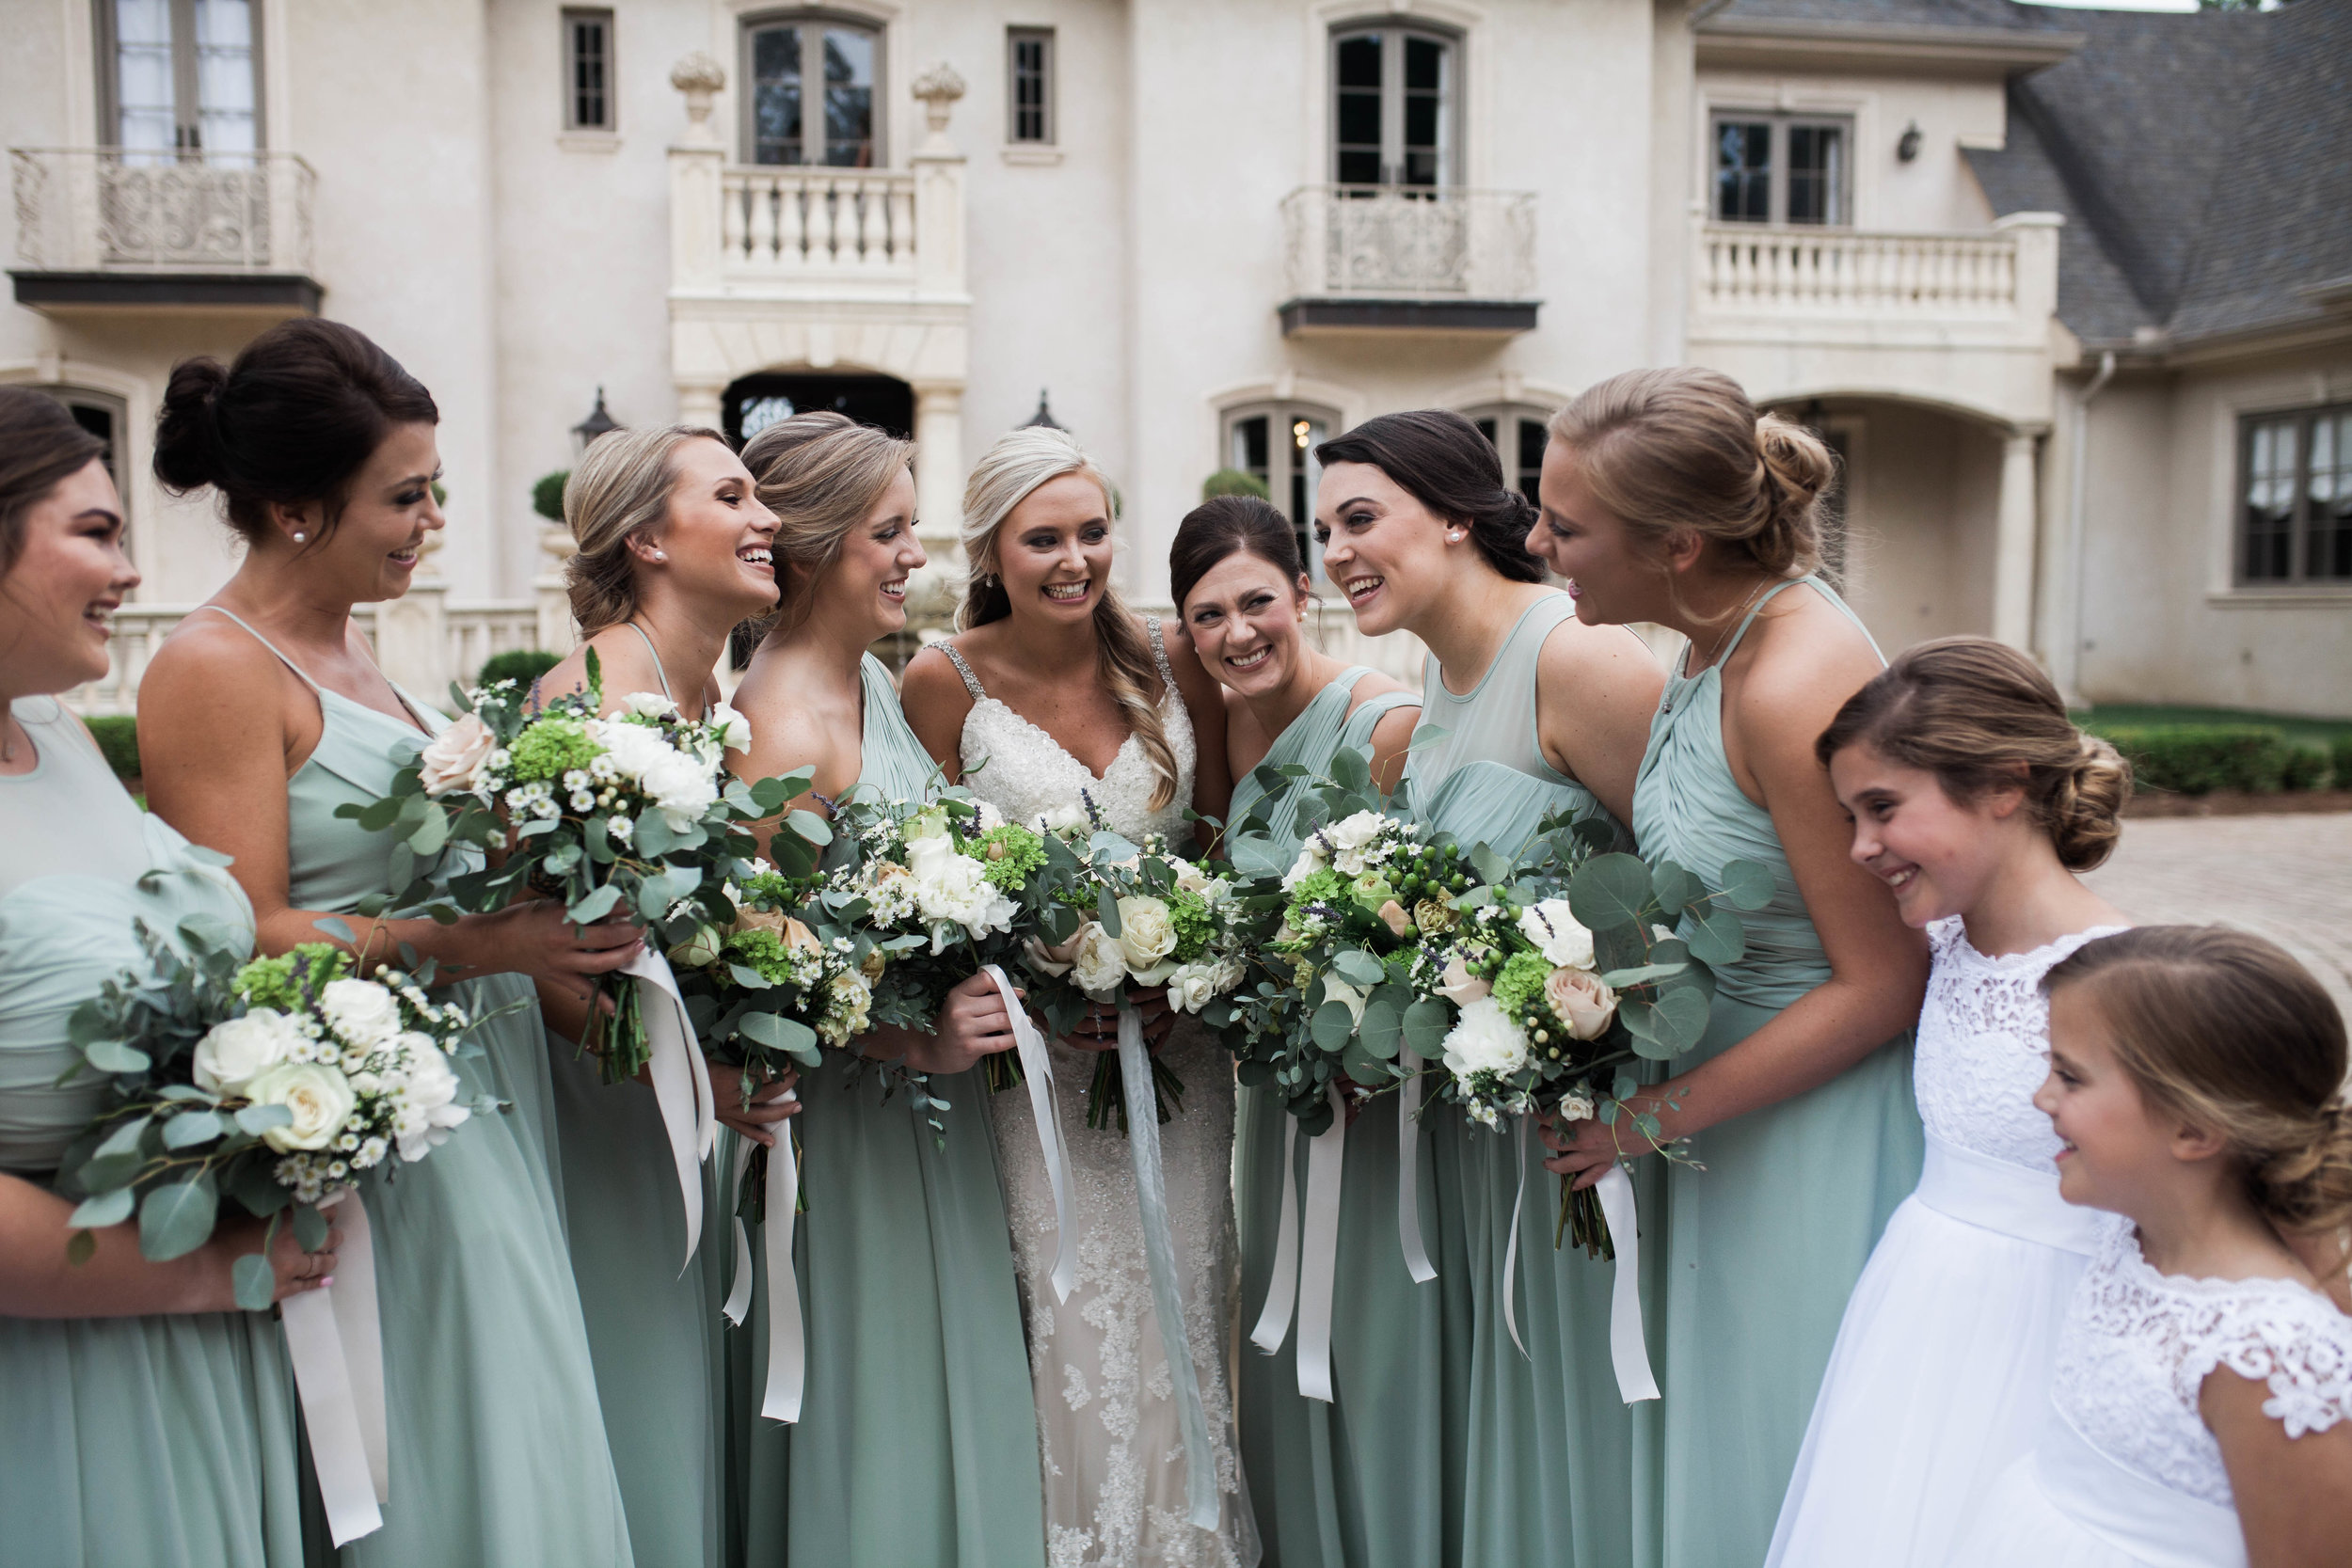 StoneWood Farms | Bride and bridesmaids